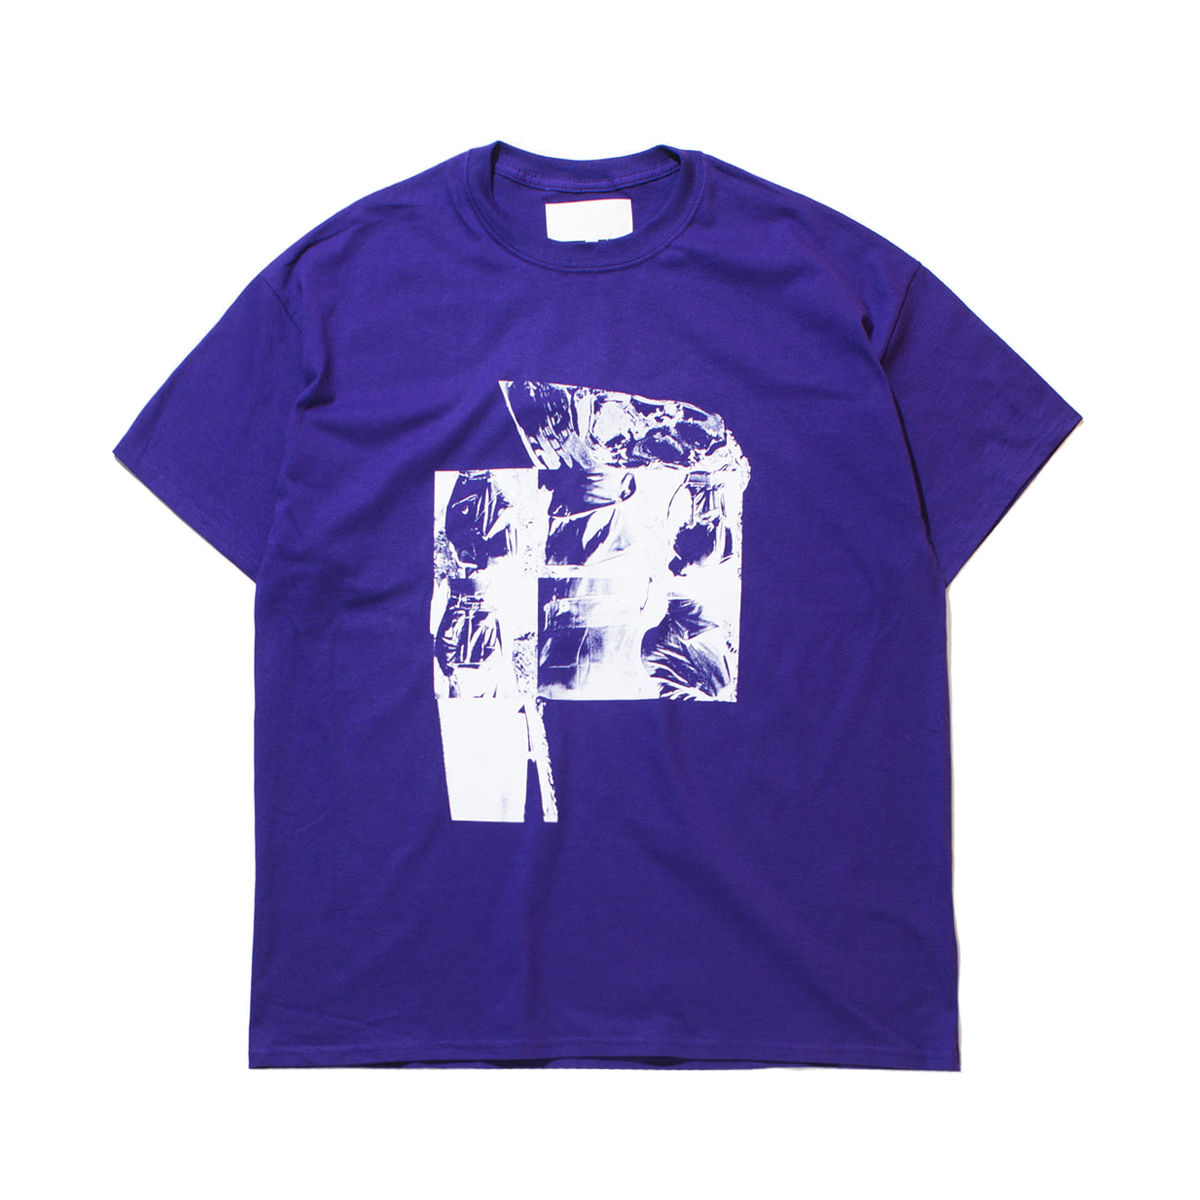 [GAKURO] 'UNTITLED #1' T-SHIRT 'PURPLE'